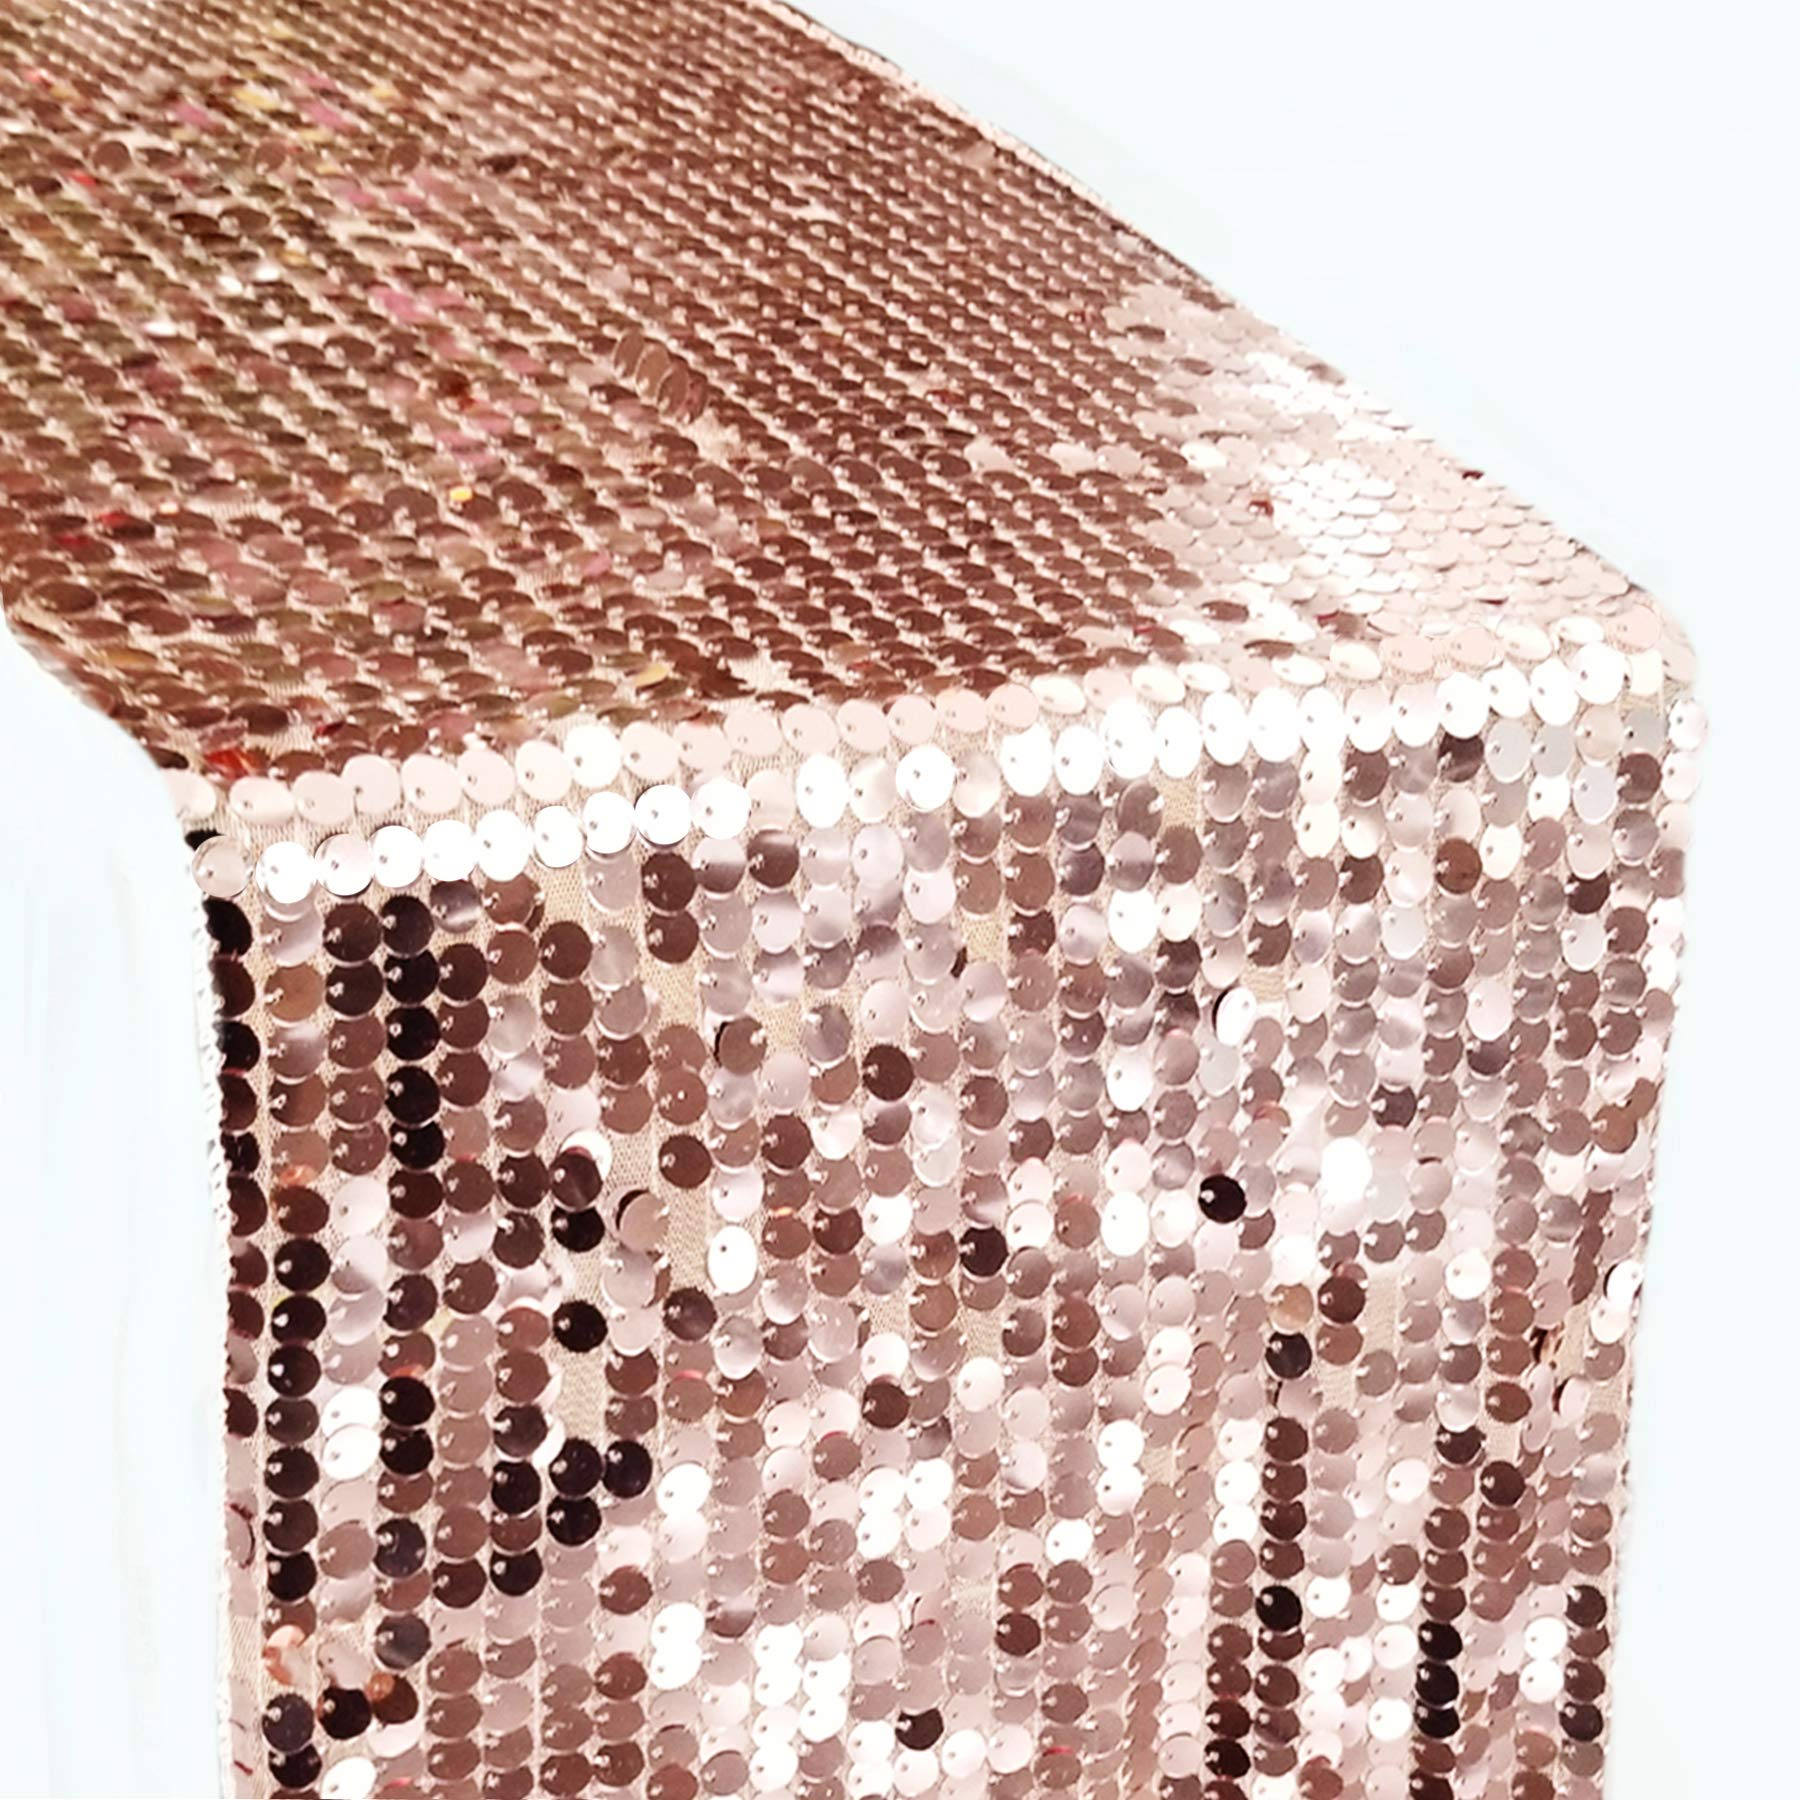 Bright Tricks Rose Gold Table Runner Rose Gold Party Rose Gold Party Decor Sequin Table Runners 13 X 108 Glitter Payette Rose Gold Tablecloth Party Birthday Decorations Bridal Baby Shower Buy Online